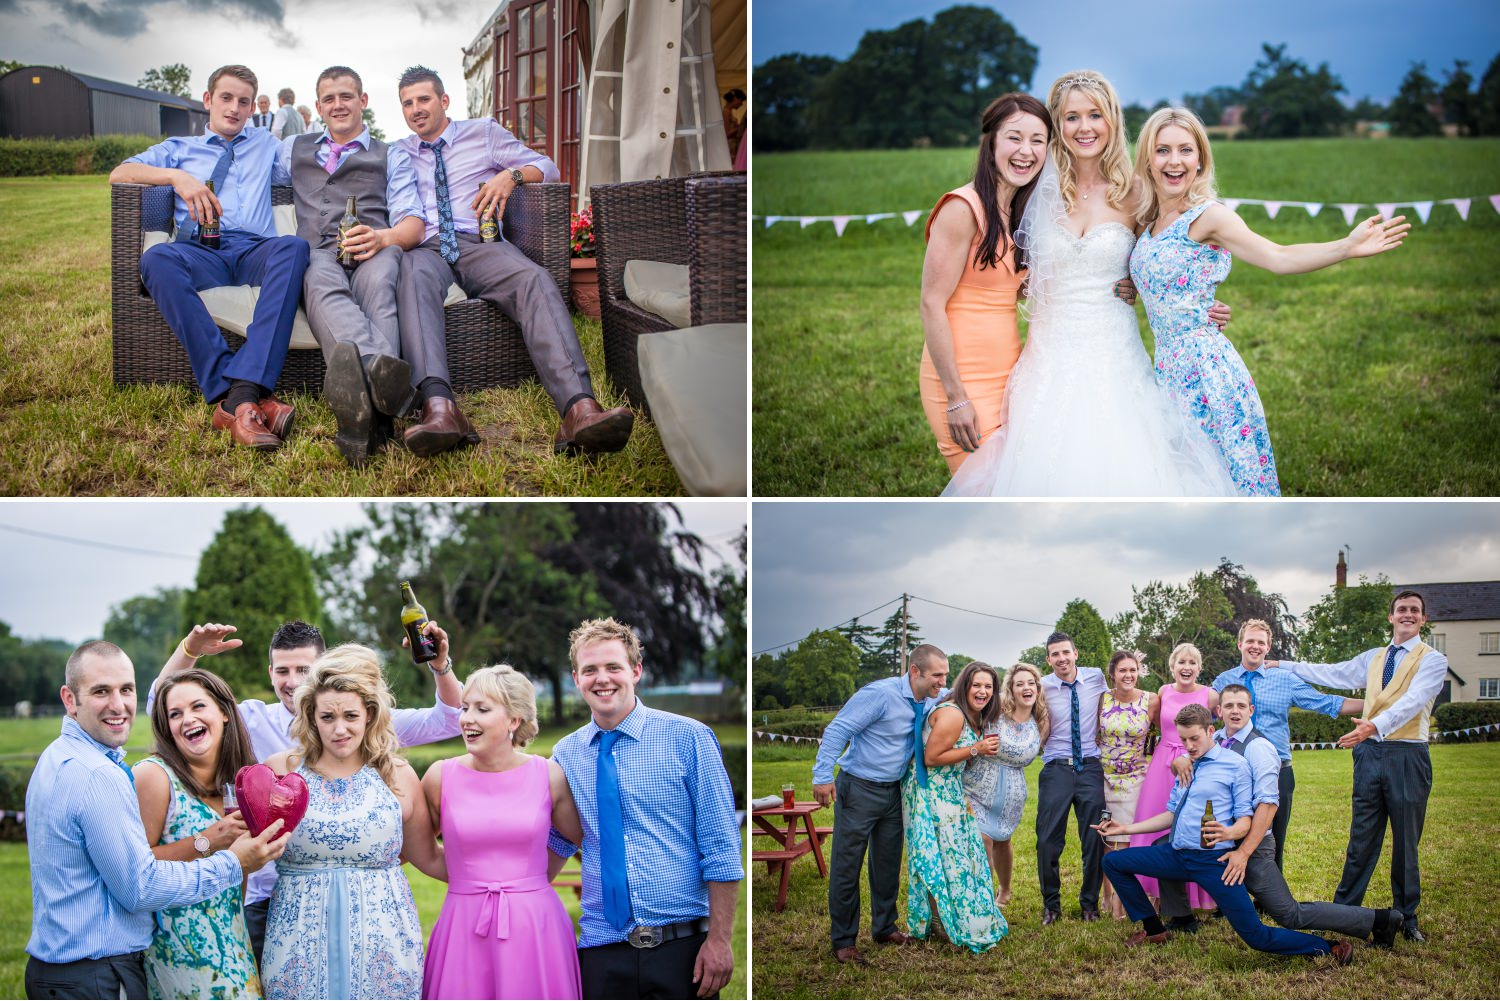 Guests being photographed having fun at Marquee Farm wedding Cheshire